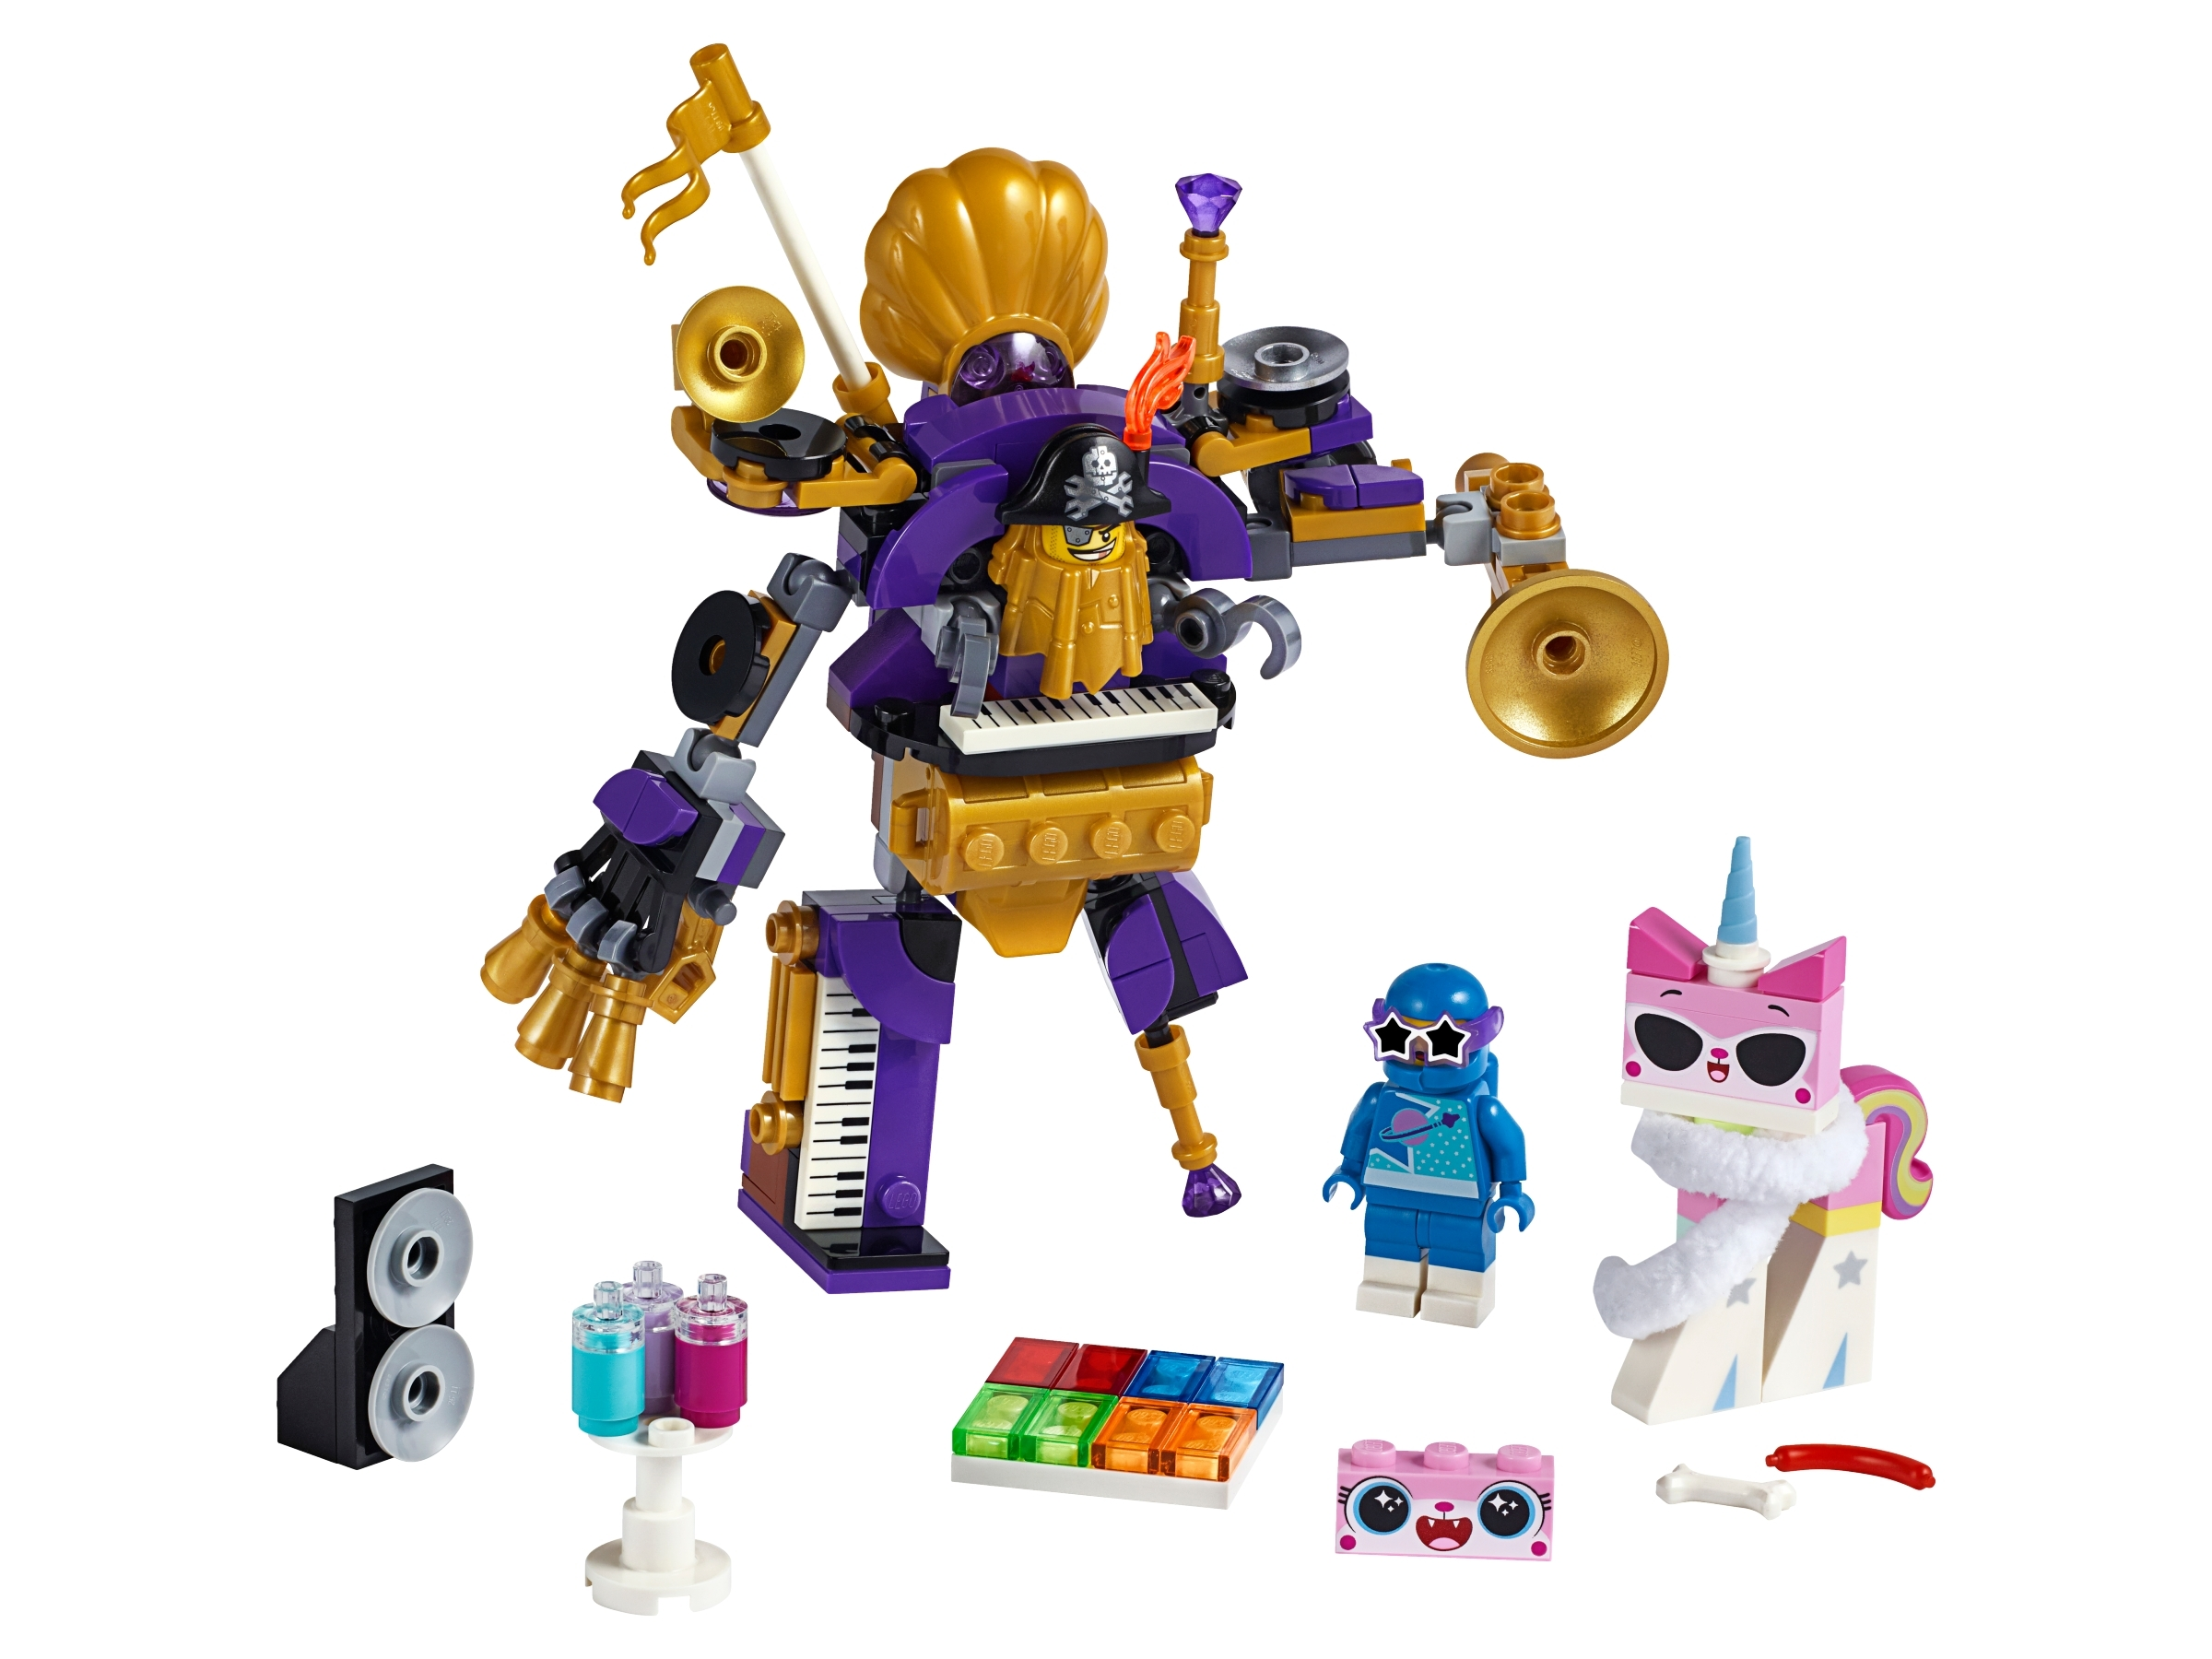 Systar Party Crew 70848 The Lego Movie 2 Buy Online At The Official Lego Shop Us